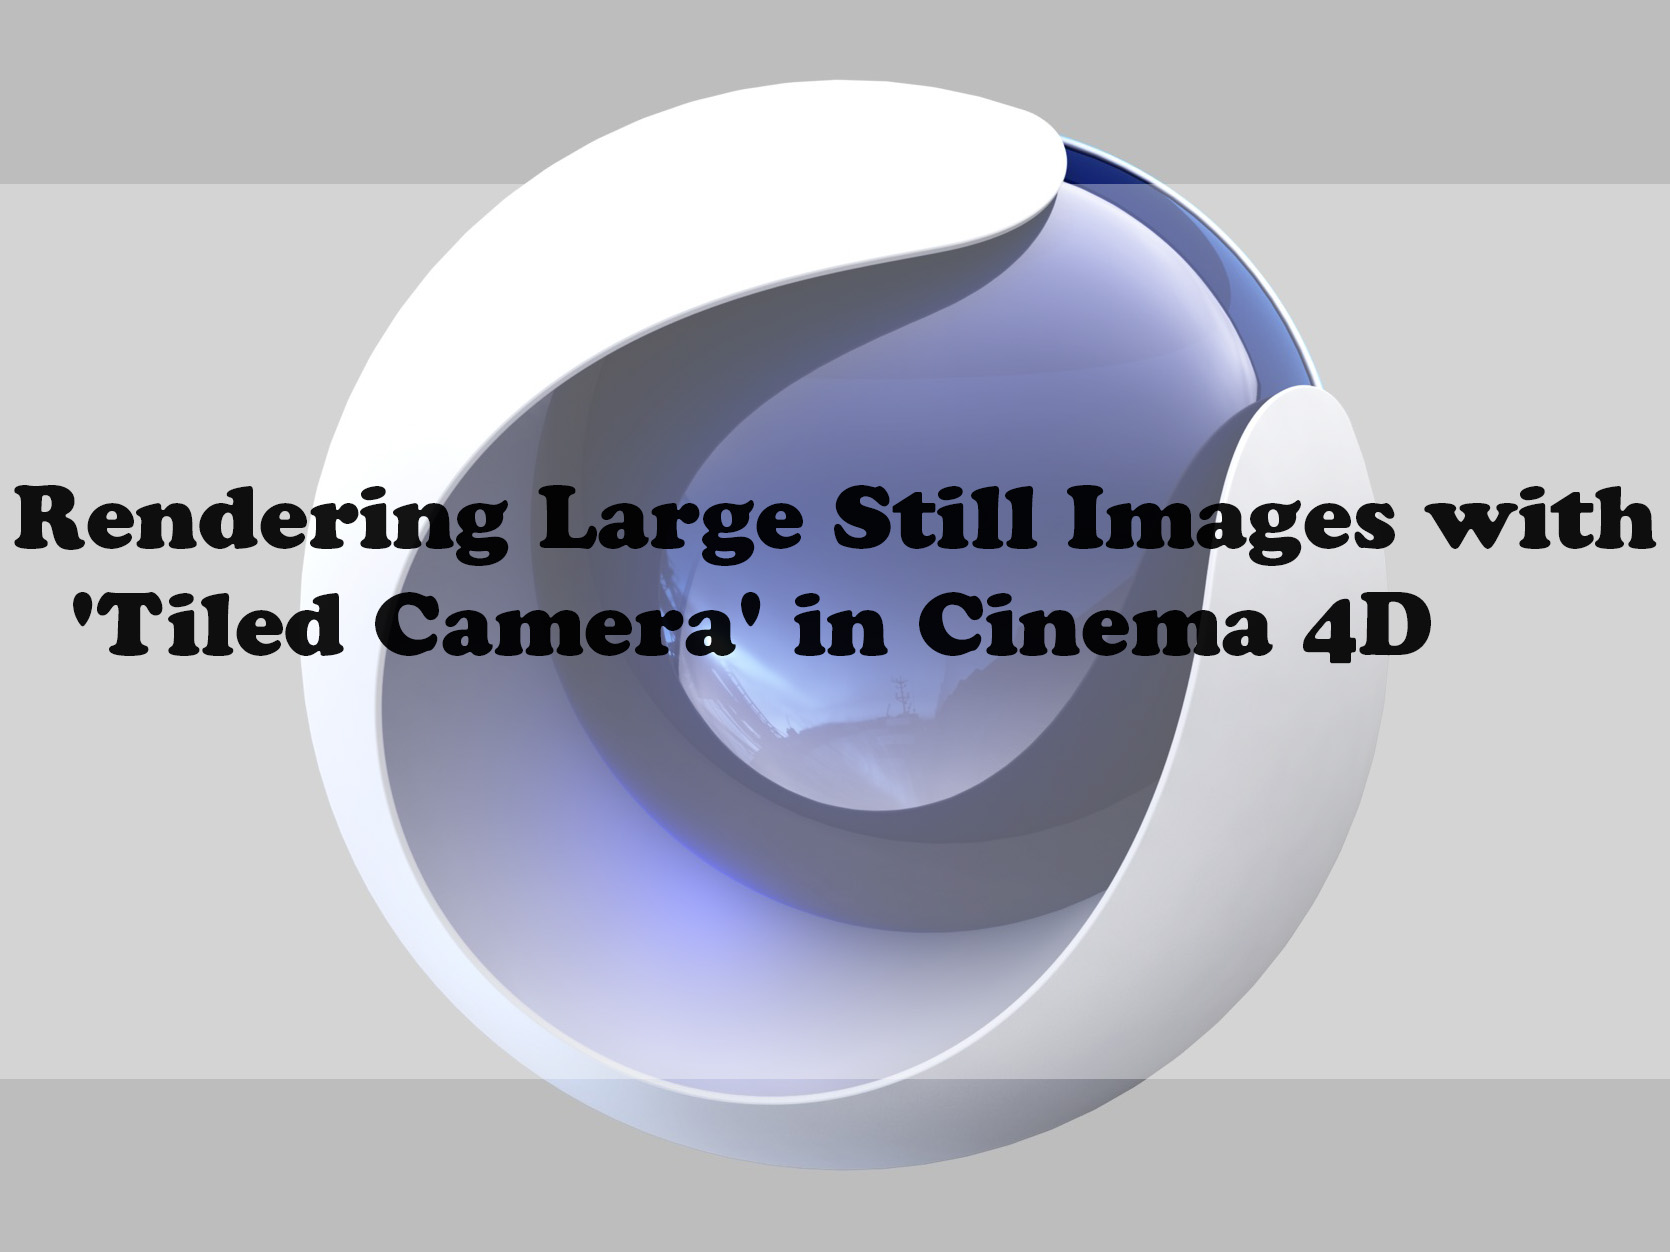 Rendering Large Still Images with 'Tiled Camera' in Cinema 4D